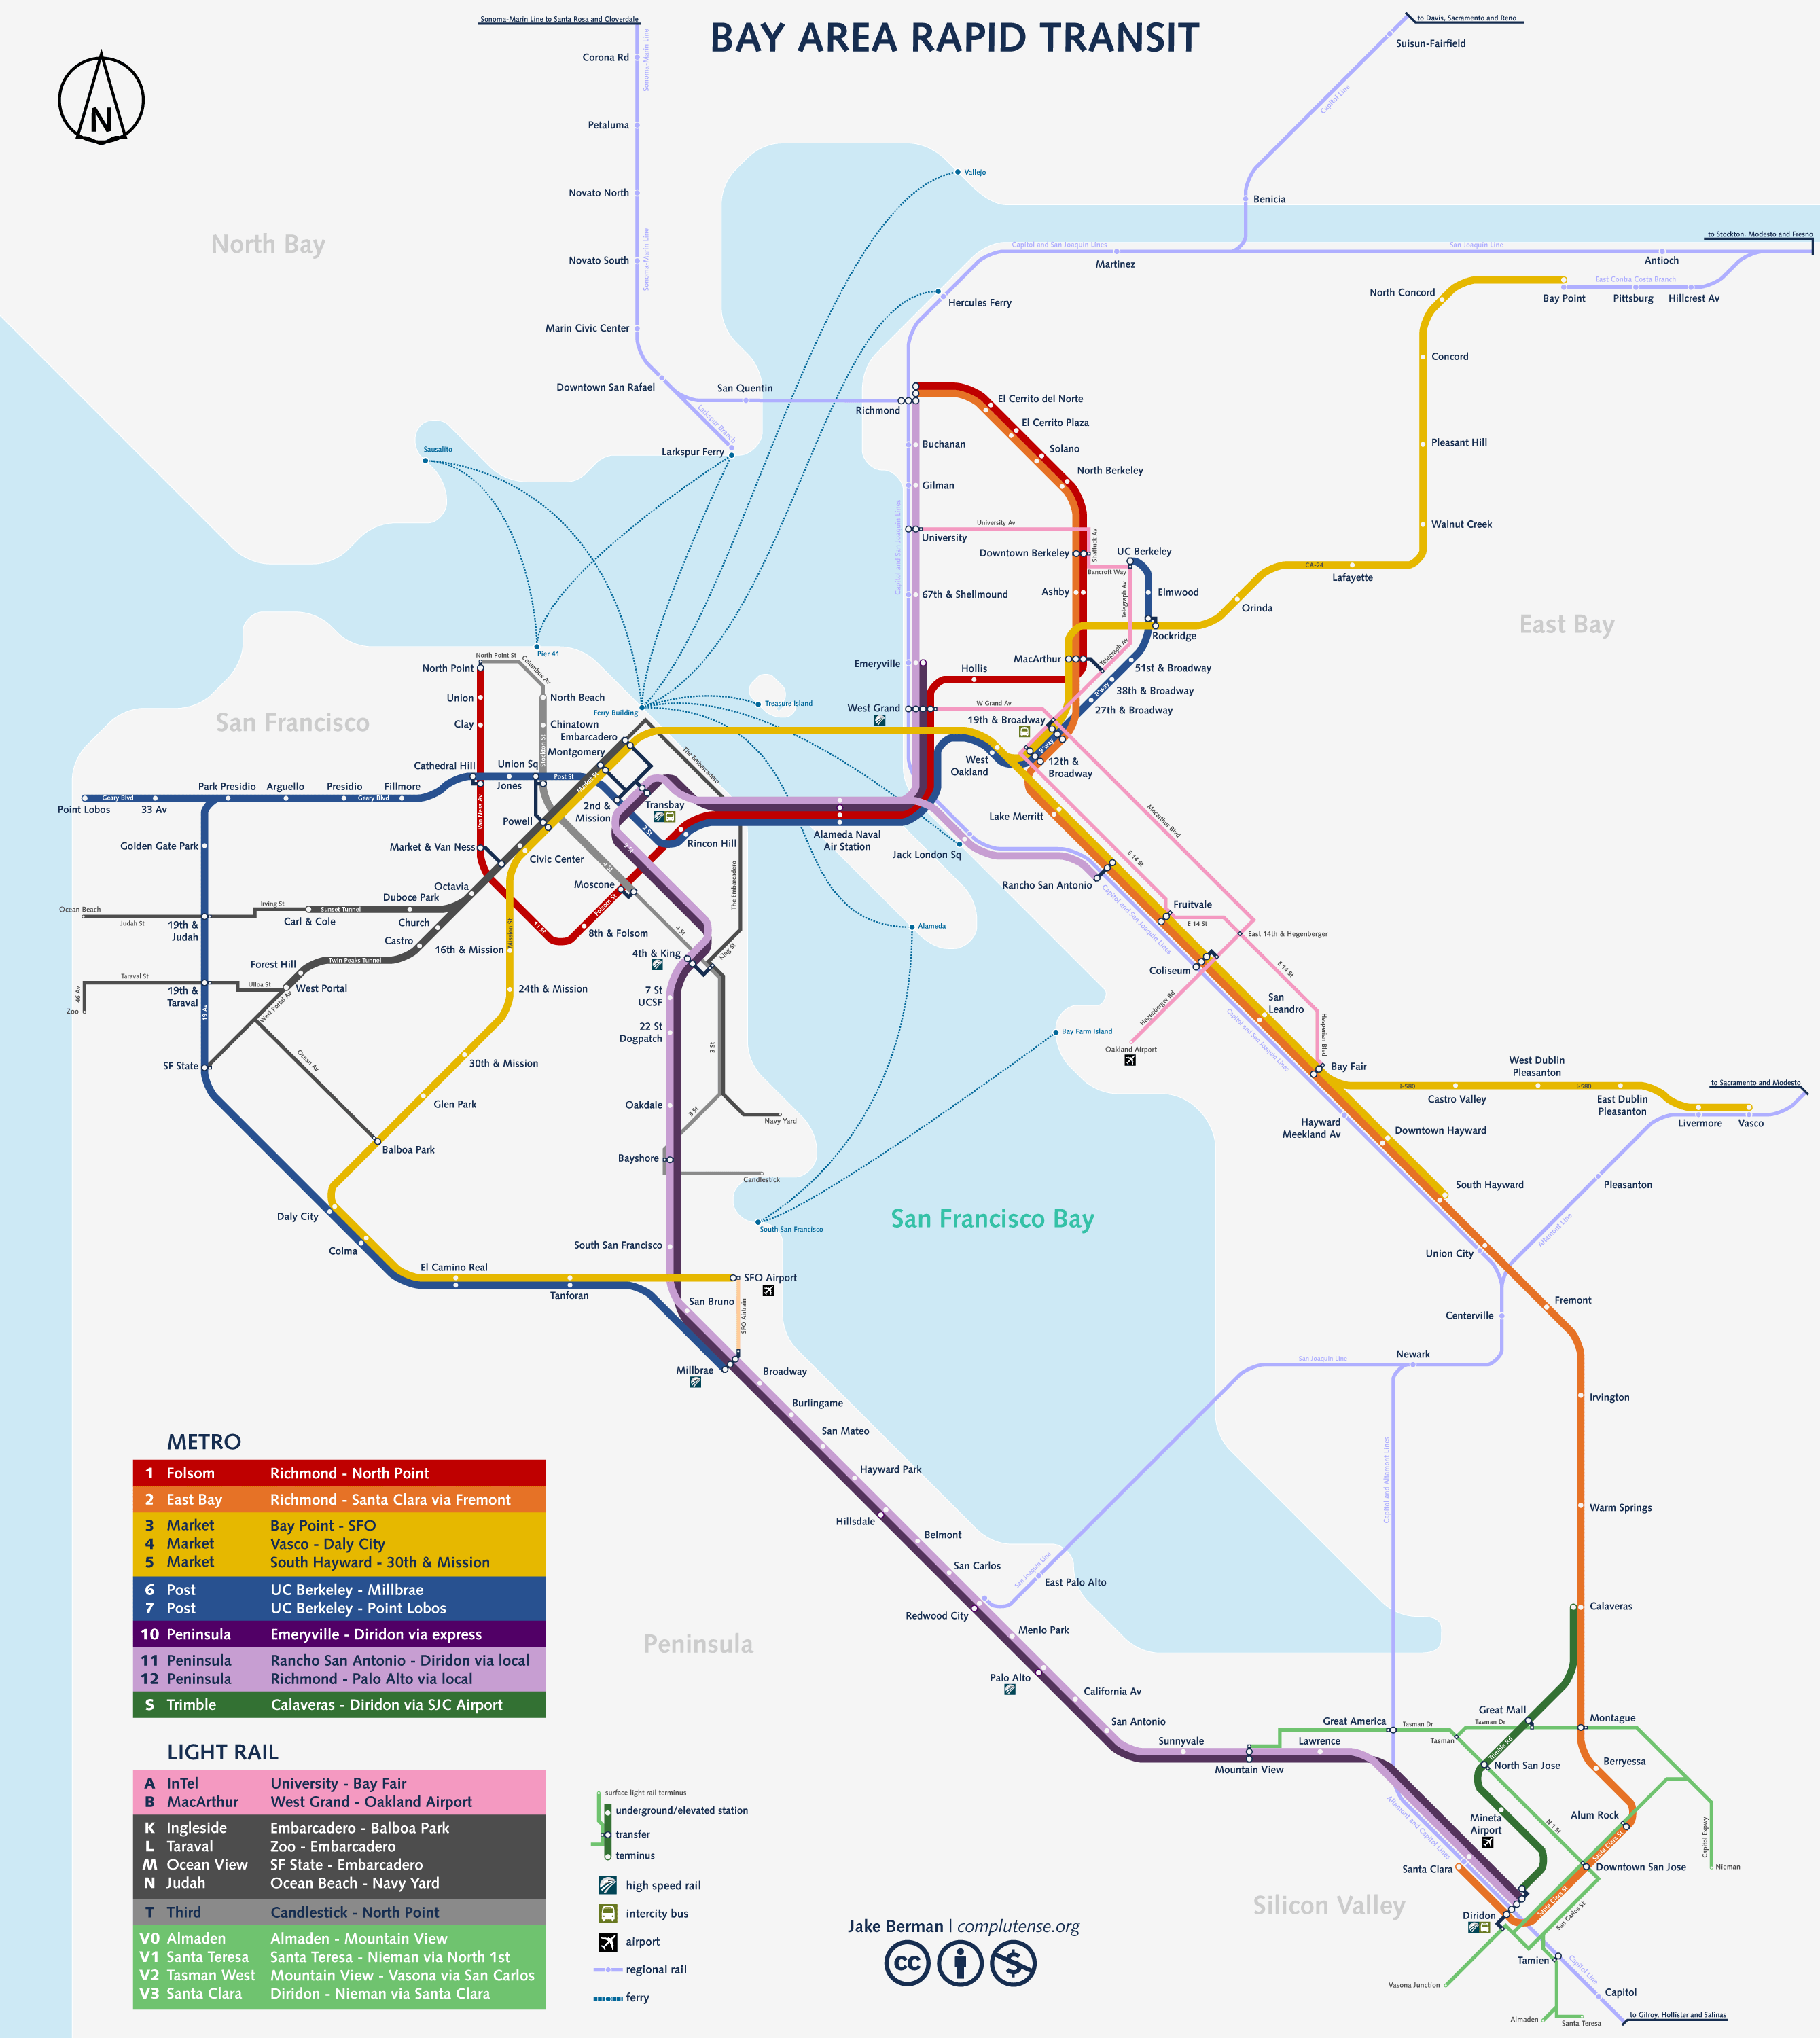 California Subway Map.Take The Subway In San Franscisco Completed In January 2008 San